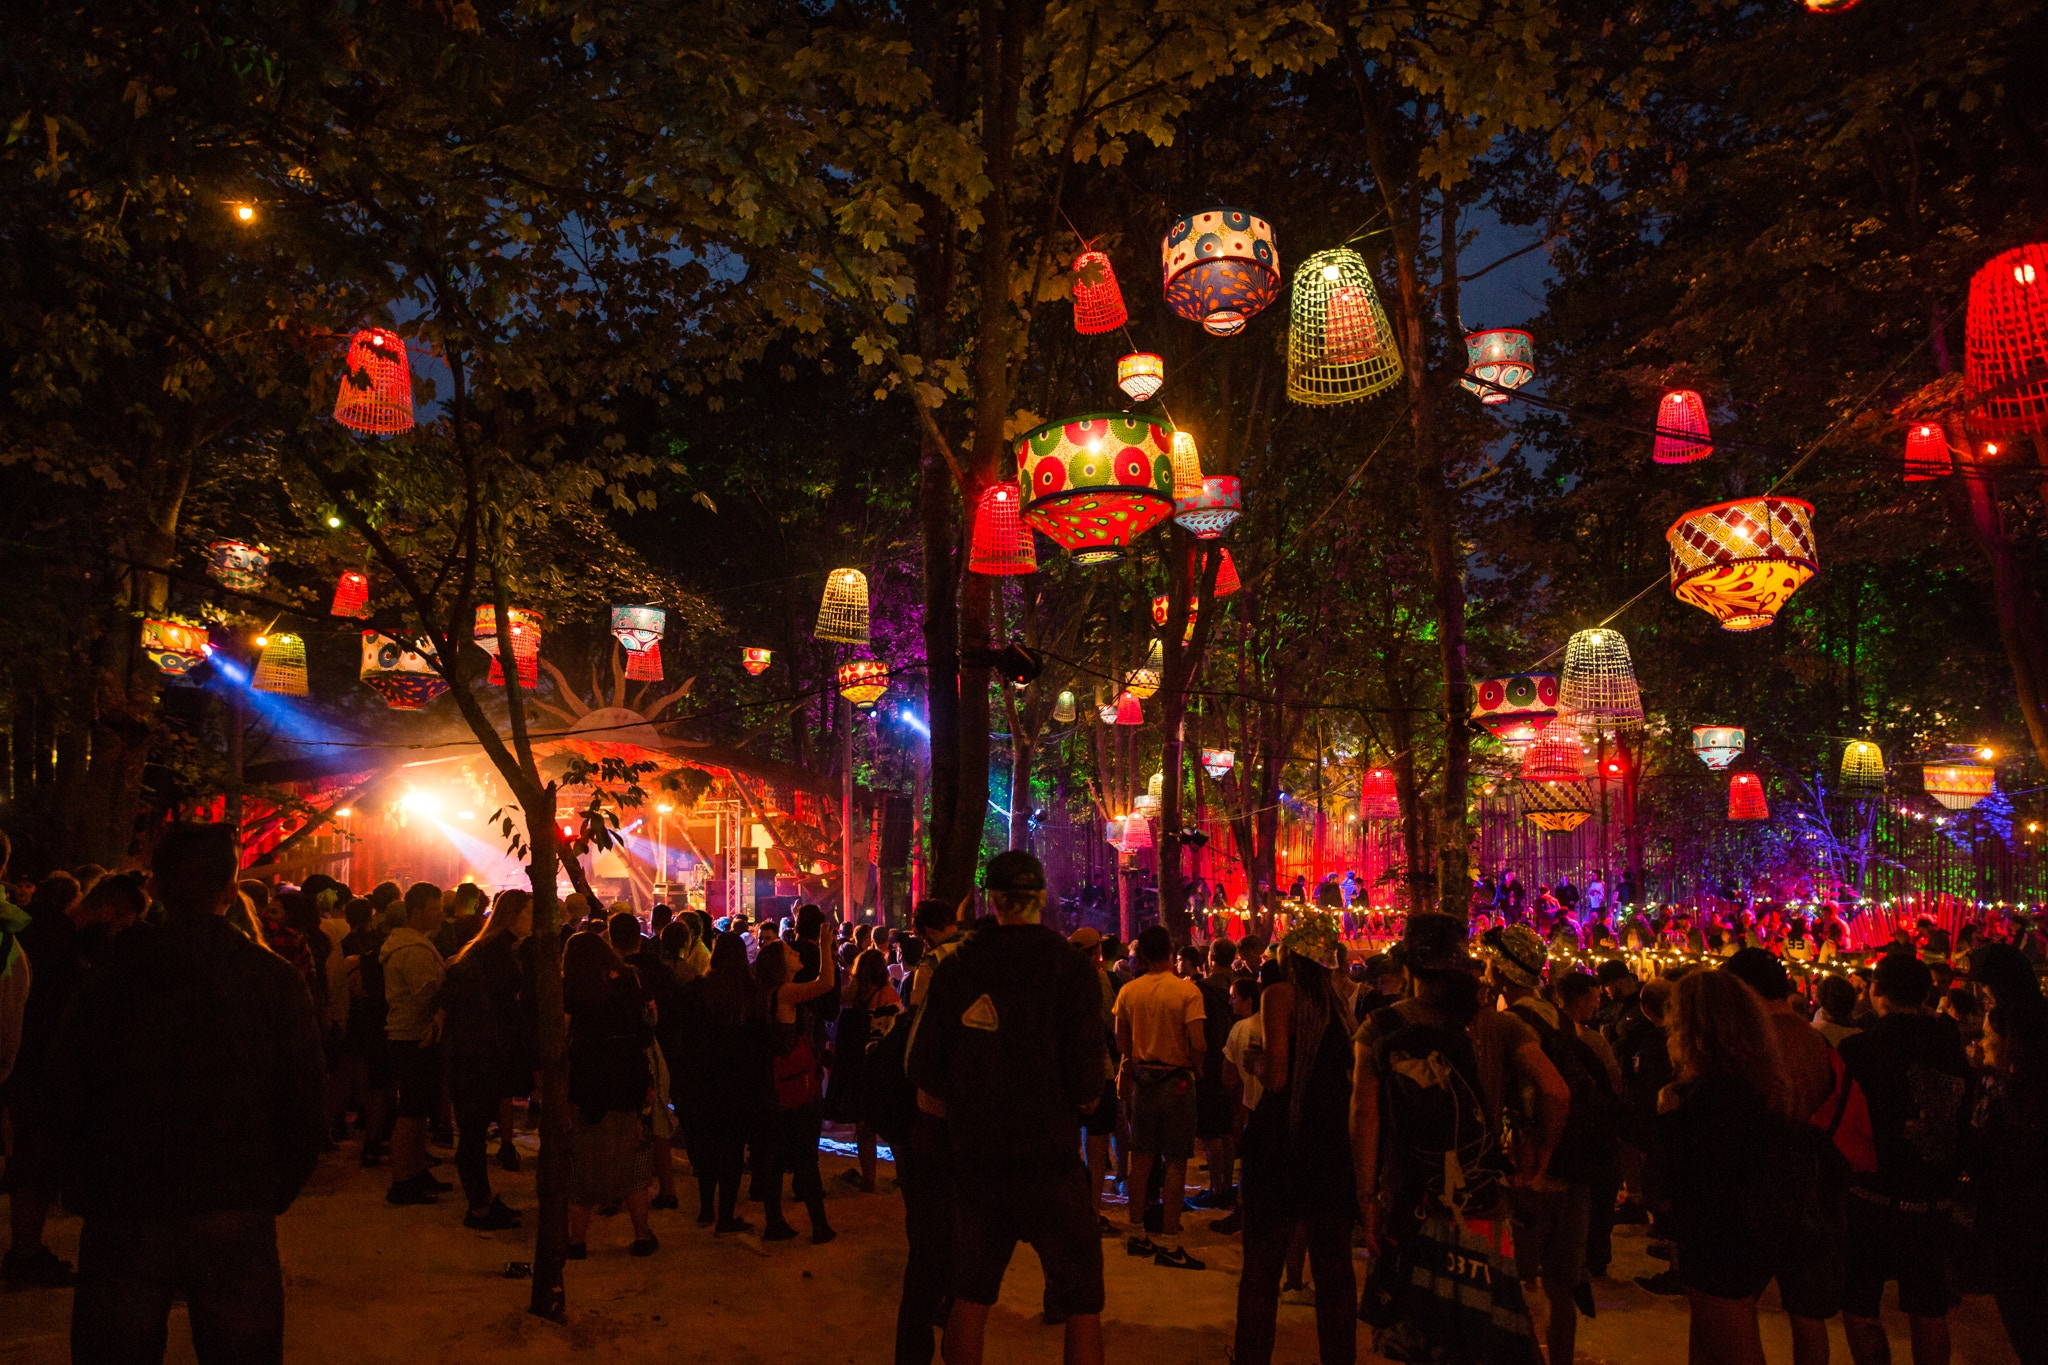 Boomtown Chapter 11 - A Radical City - 7th-11th August 2019